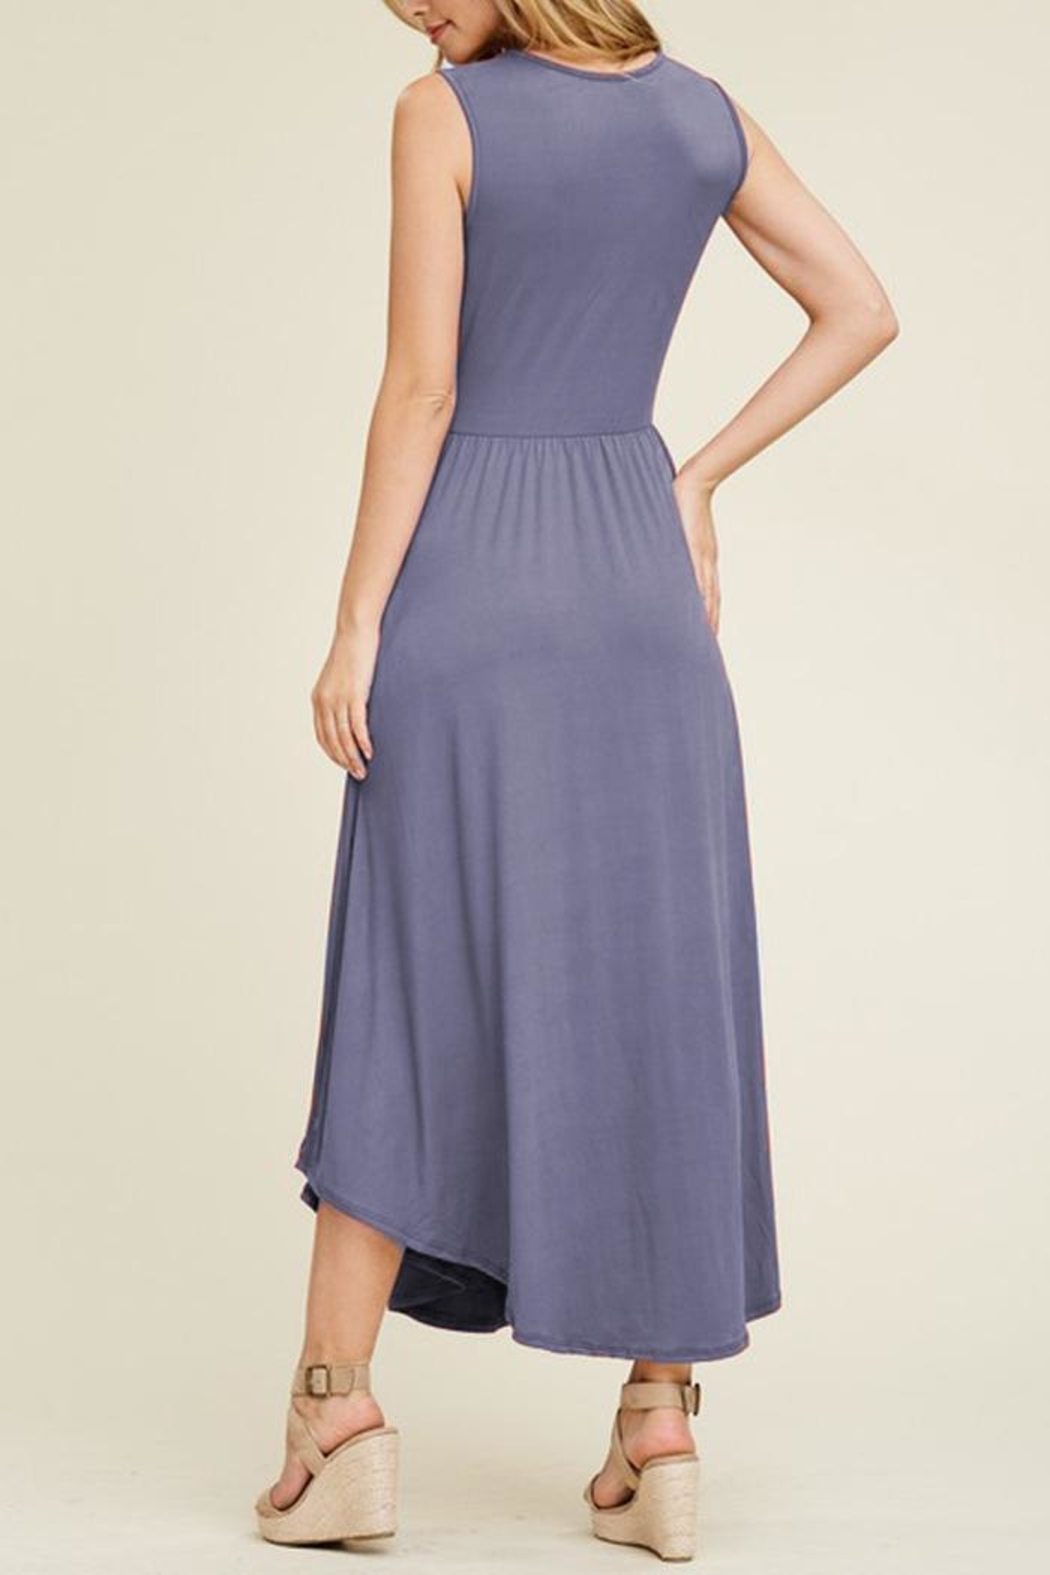 33098c532c5 Reborn J Sleeveless Maxi Dress from New York City by Local Color NYC ...